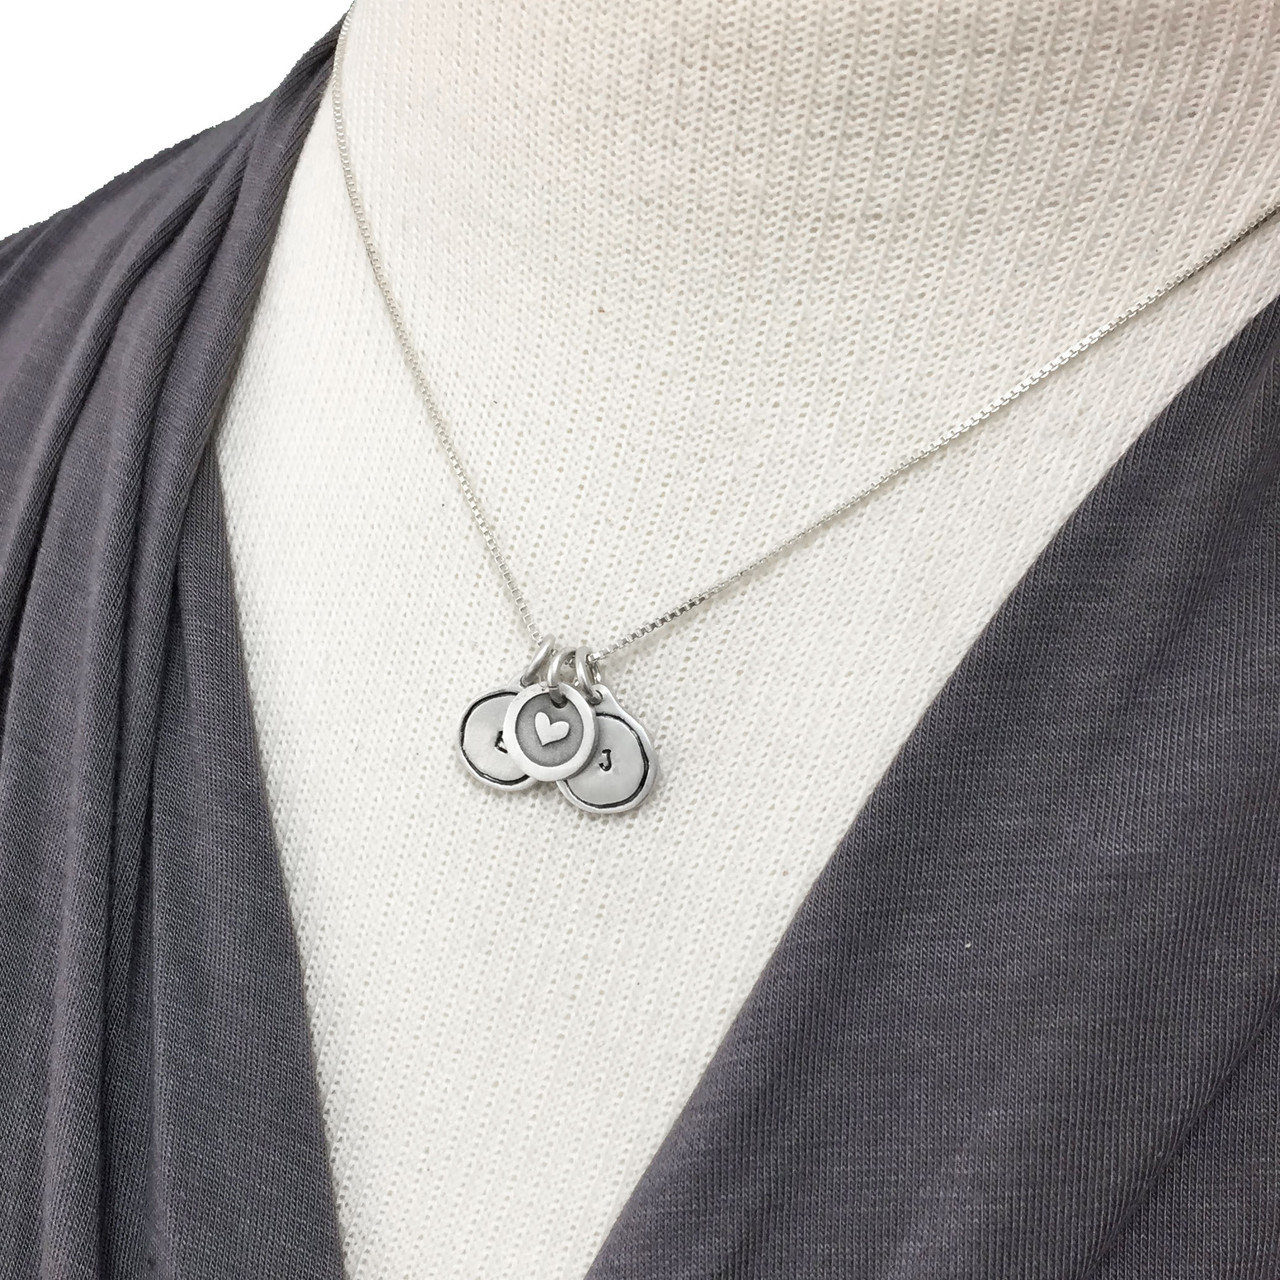 Tiny Framed Initial Charm Necklace on model